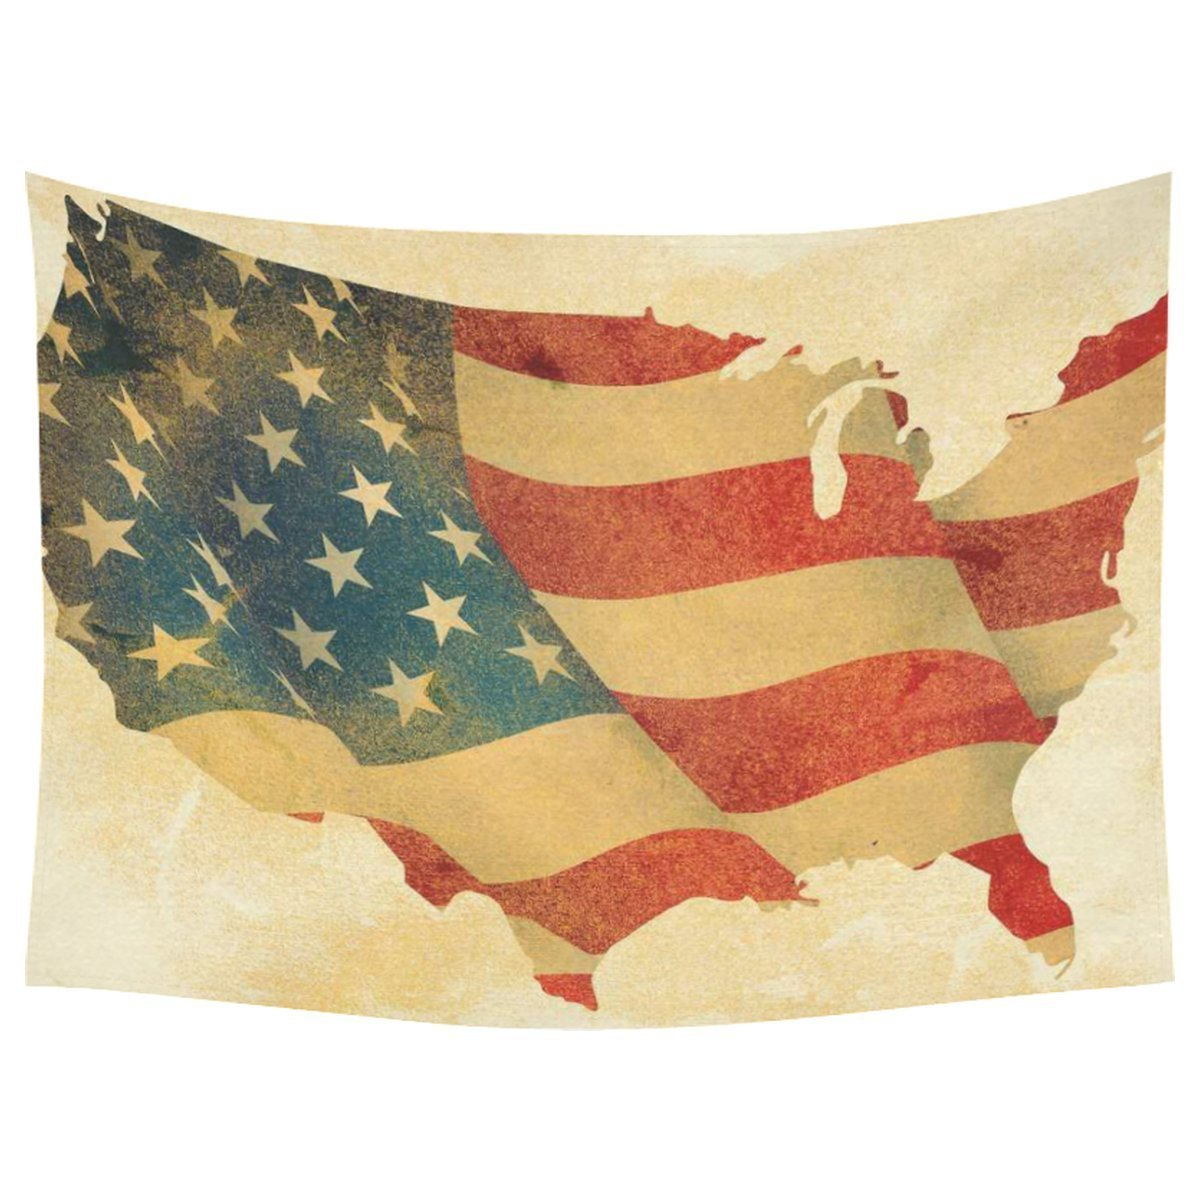 Vintage Grunge USA Map Home Decor Wall Art, American Flag Tapestry ...